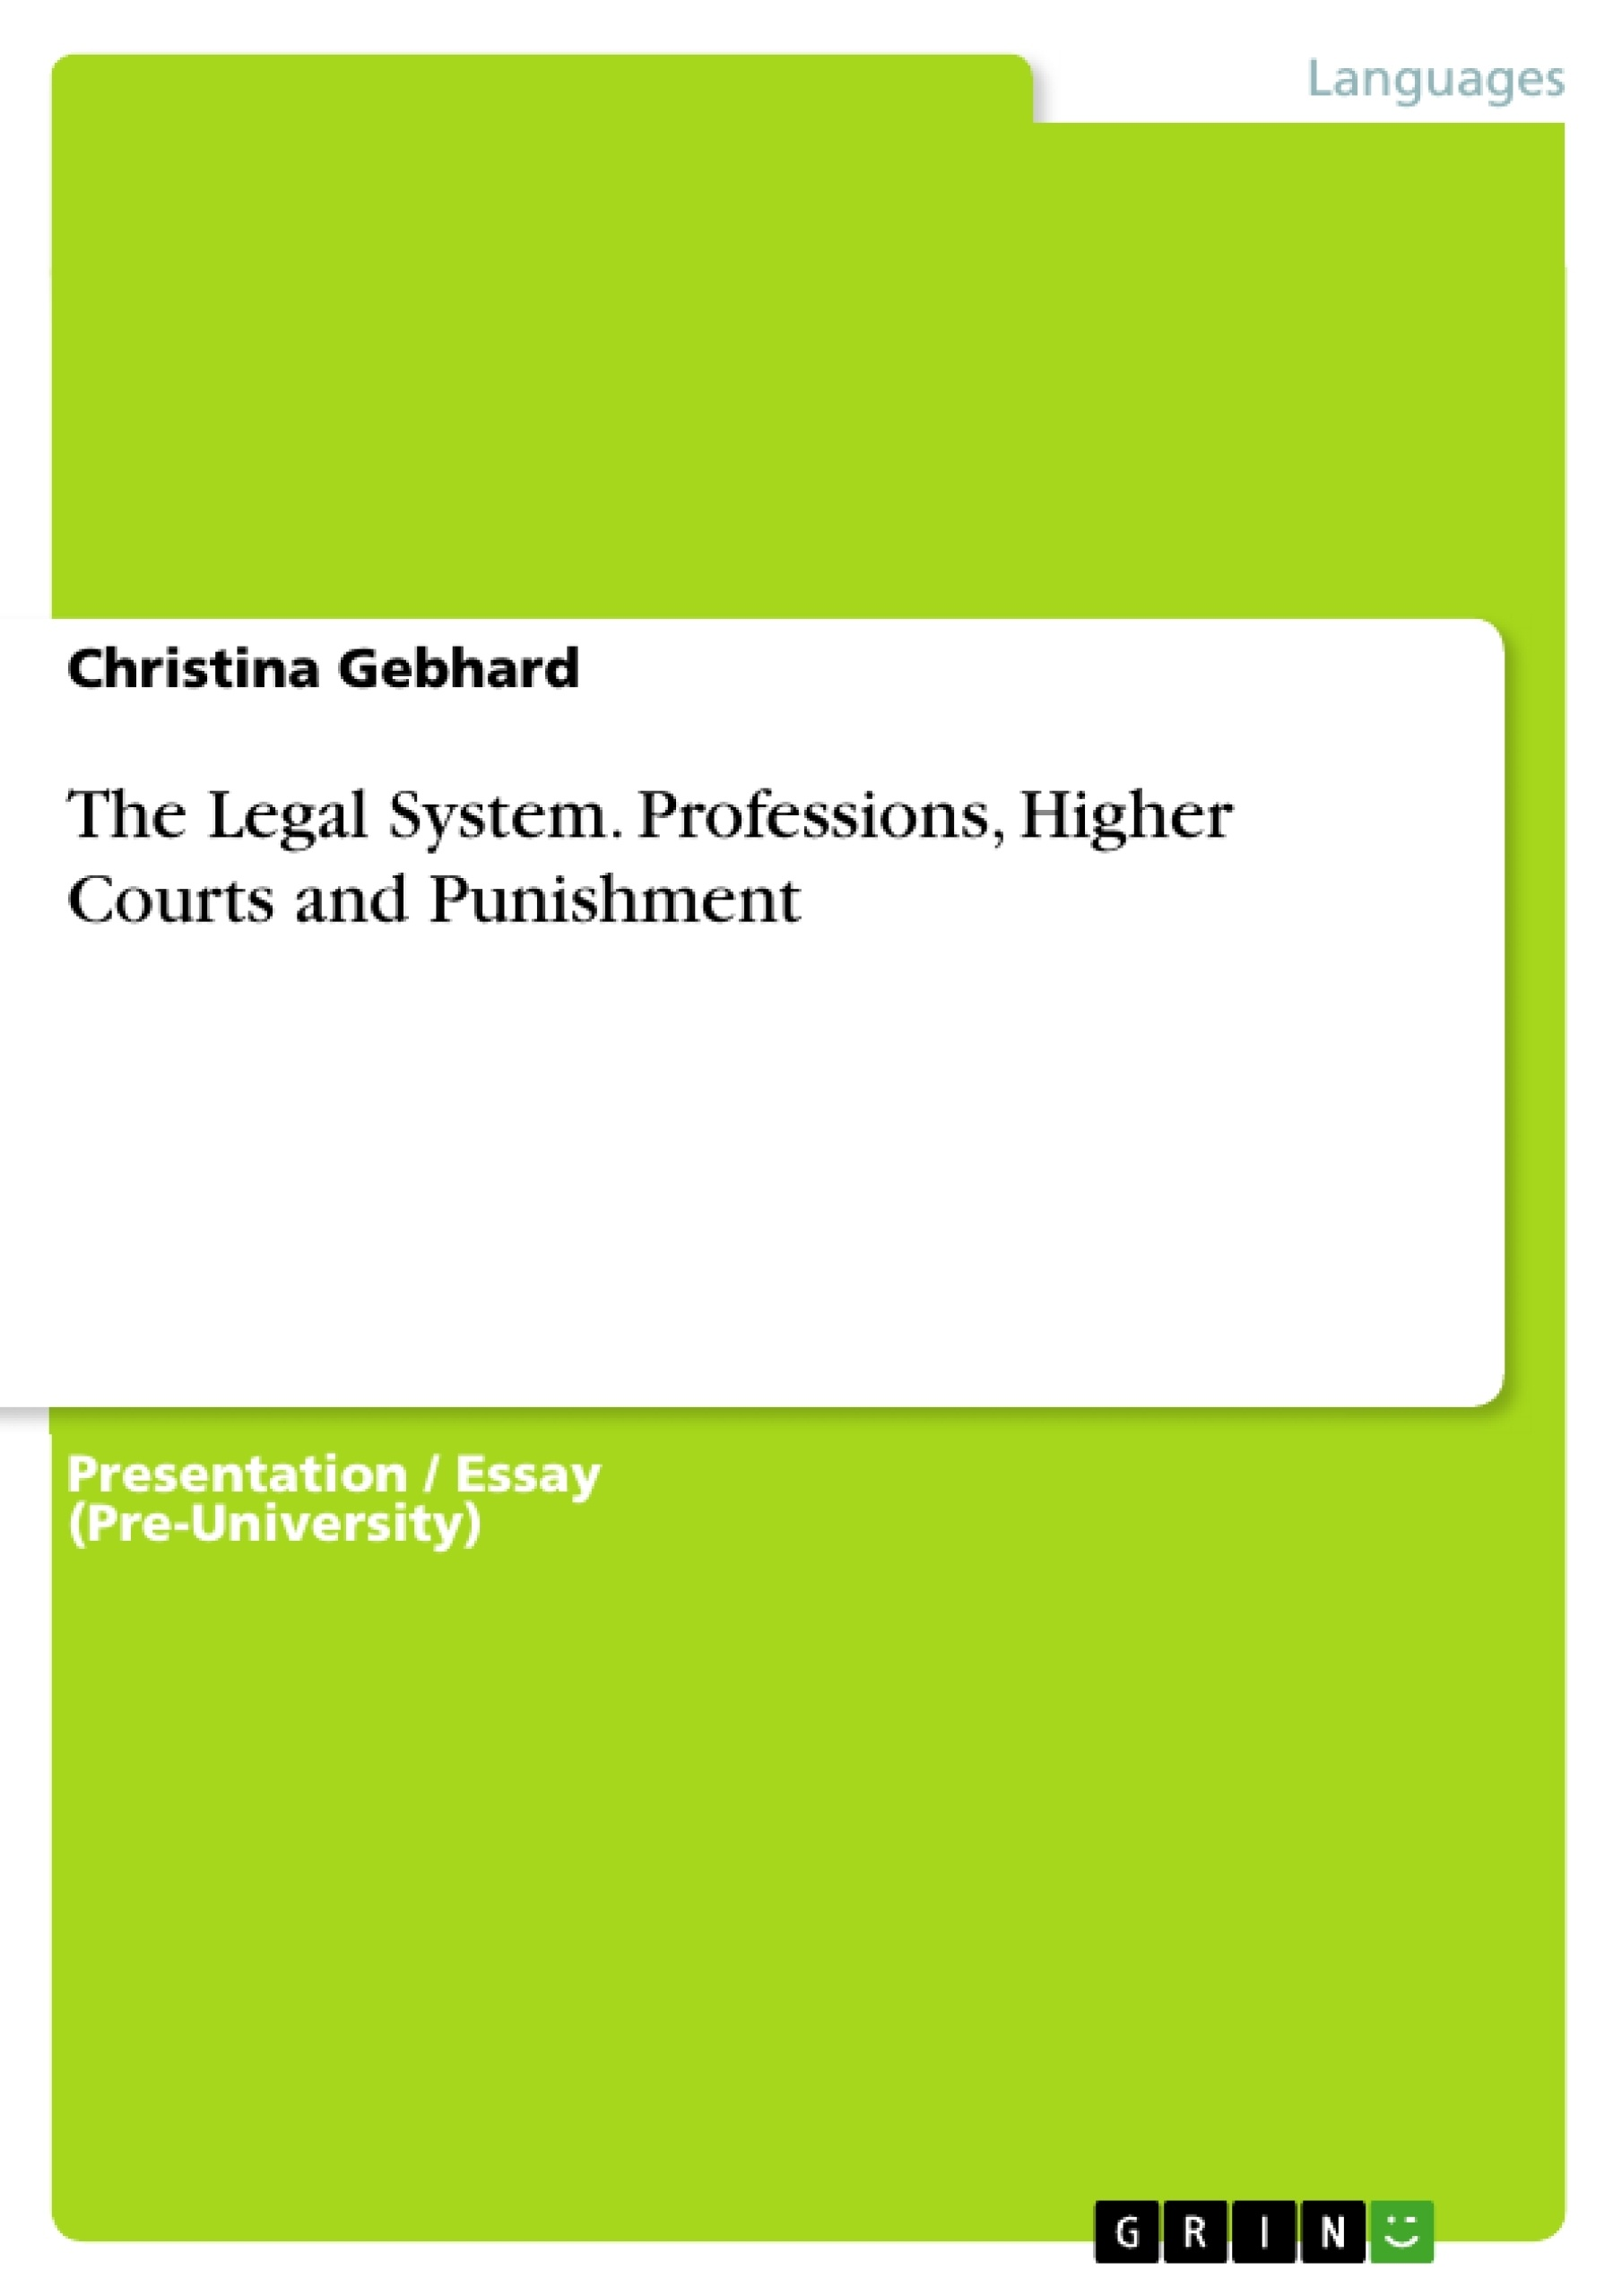 Title: The Legal System. Professions, Higher Courts and Punishment